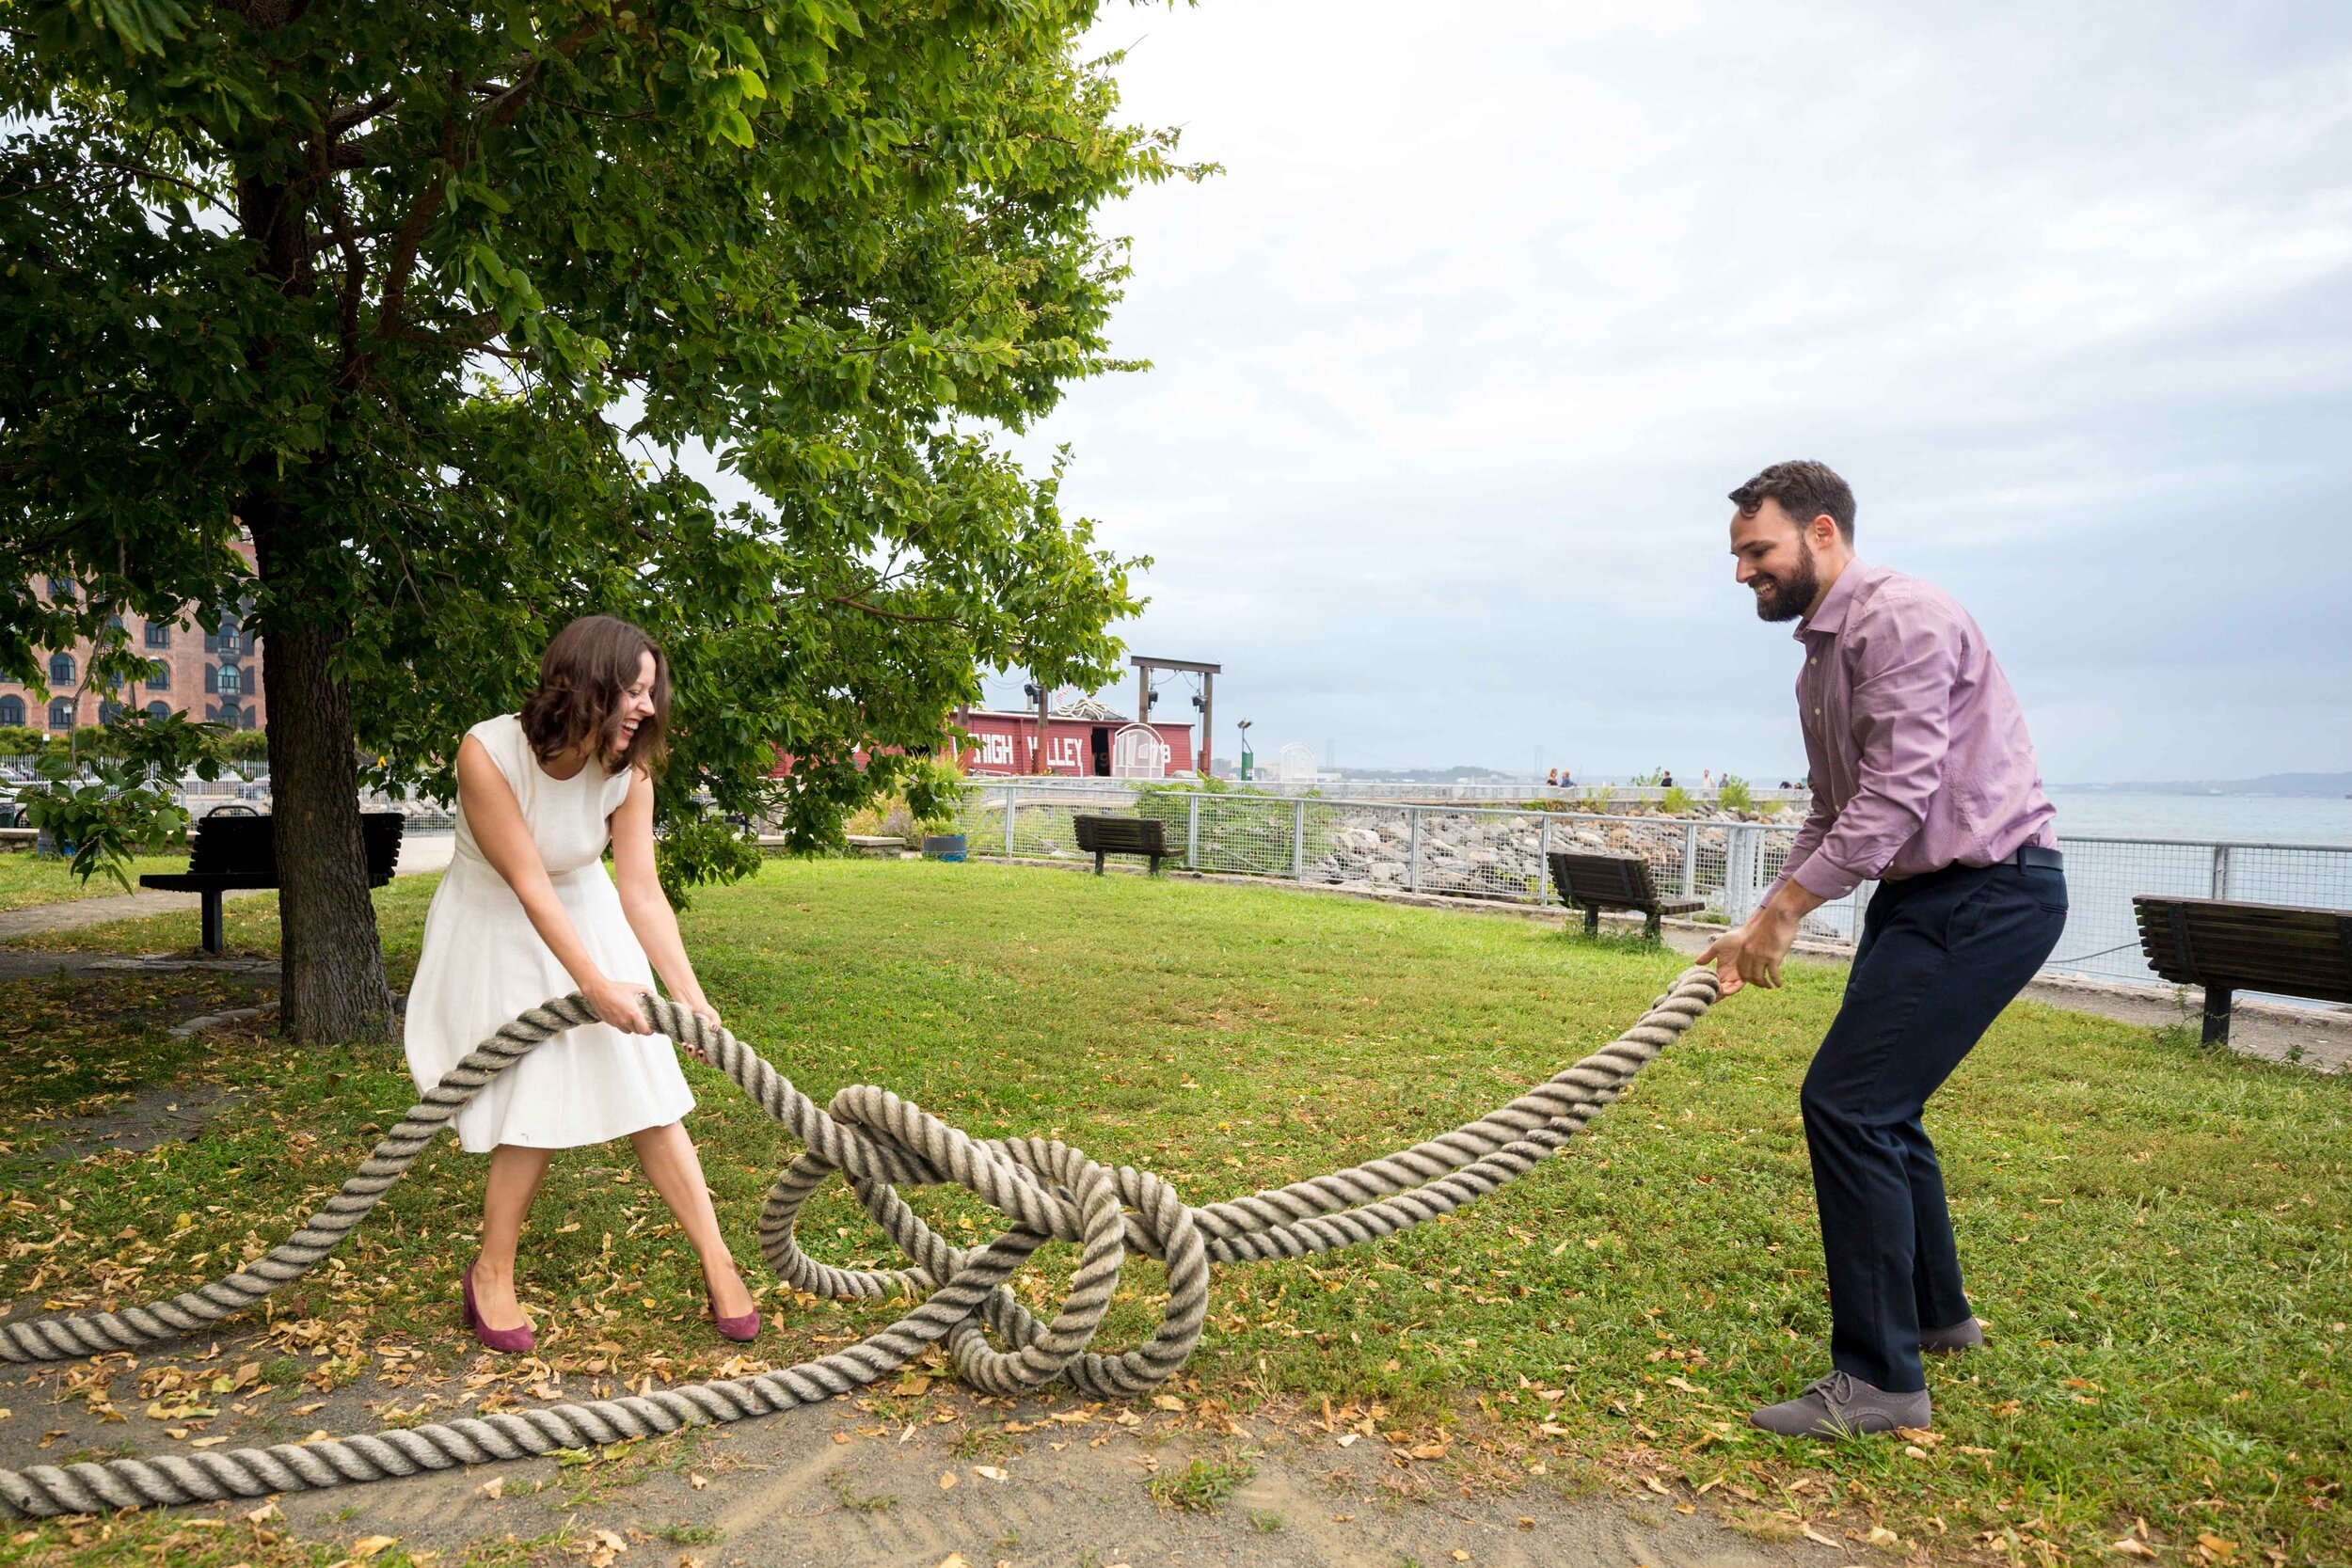 NYC Engagement Photographer New York City Wedding Photo Session Shoot Brooklyn Red Hook